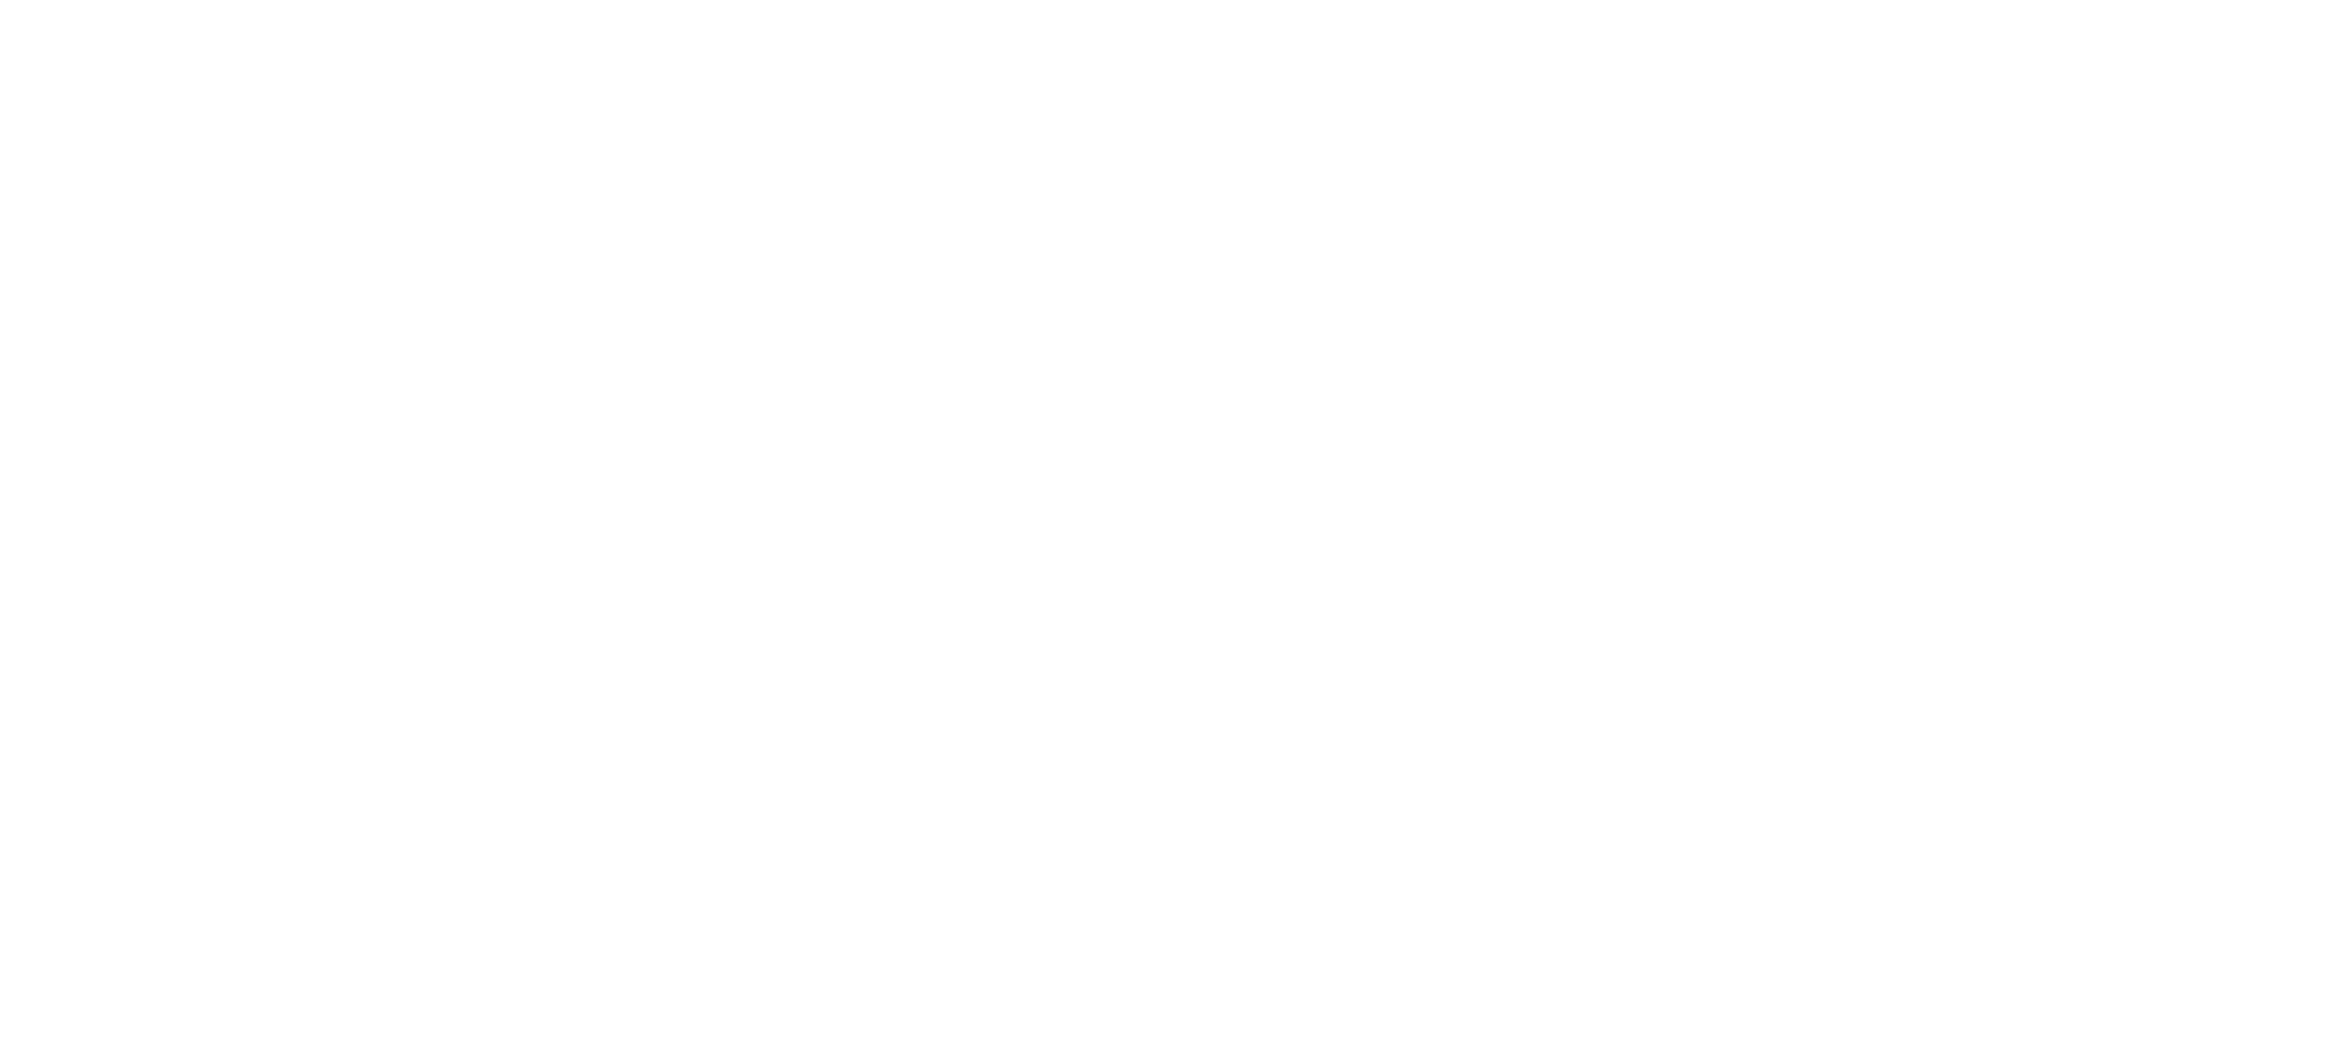 Phelan Piñon Hills Community Services District